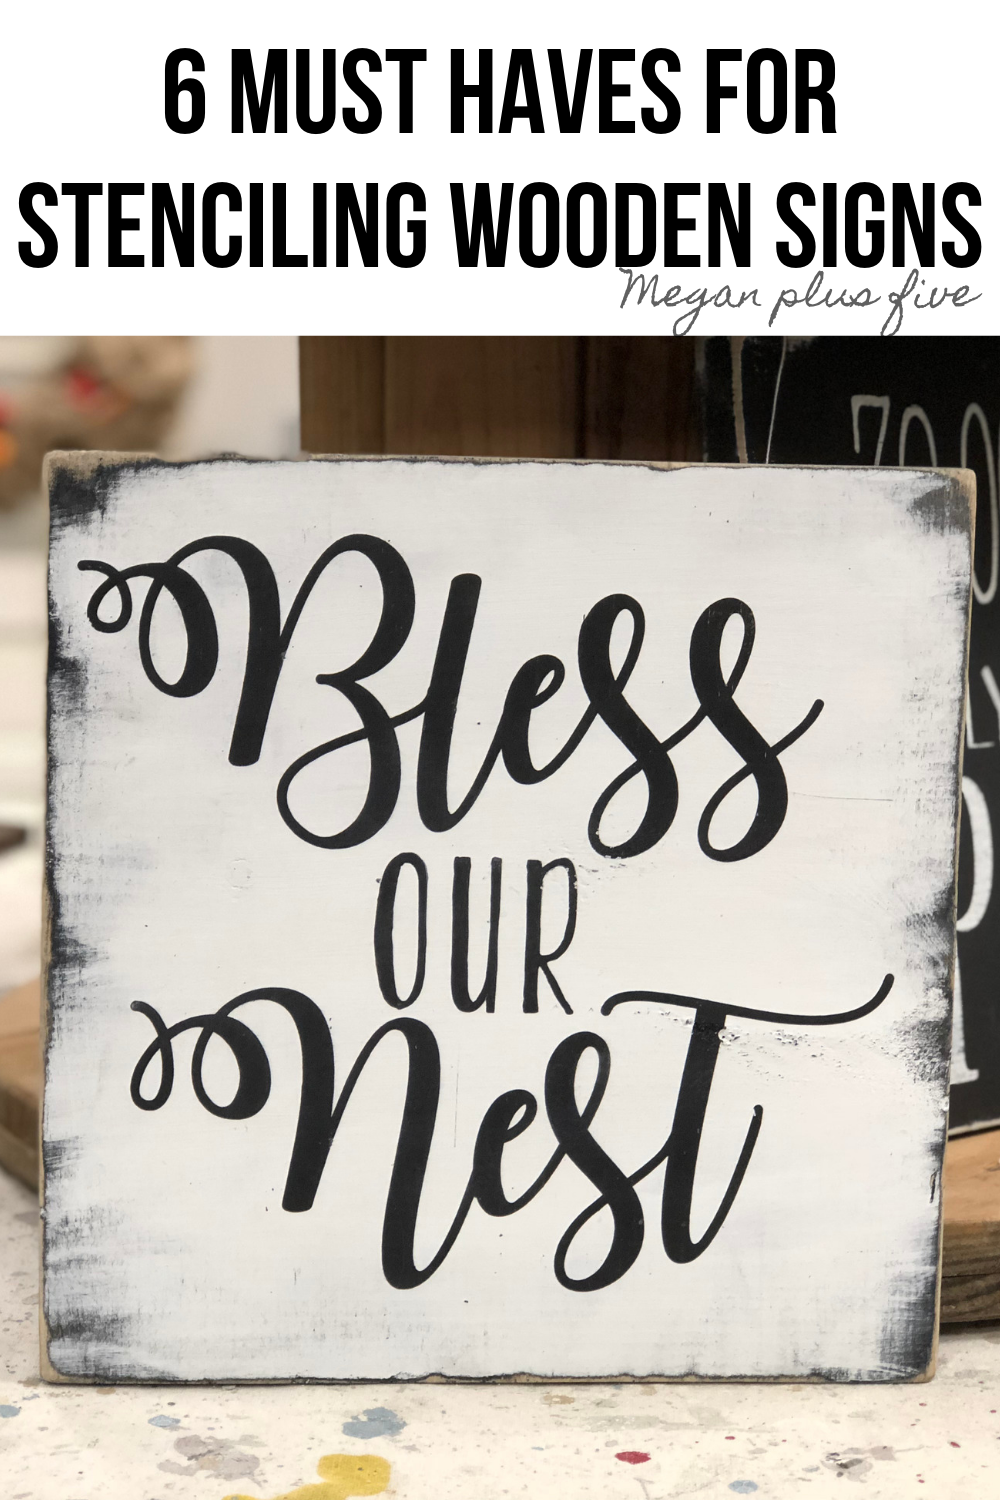 6 must haves for stenciling wooden signs. Sign painting tips for no paint bleed, no paint peel up, perfect crisp lines with stenciled wood signs.